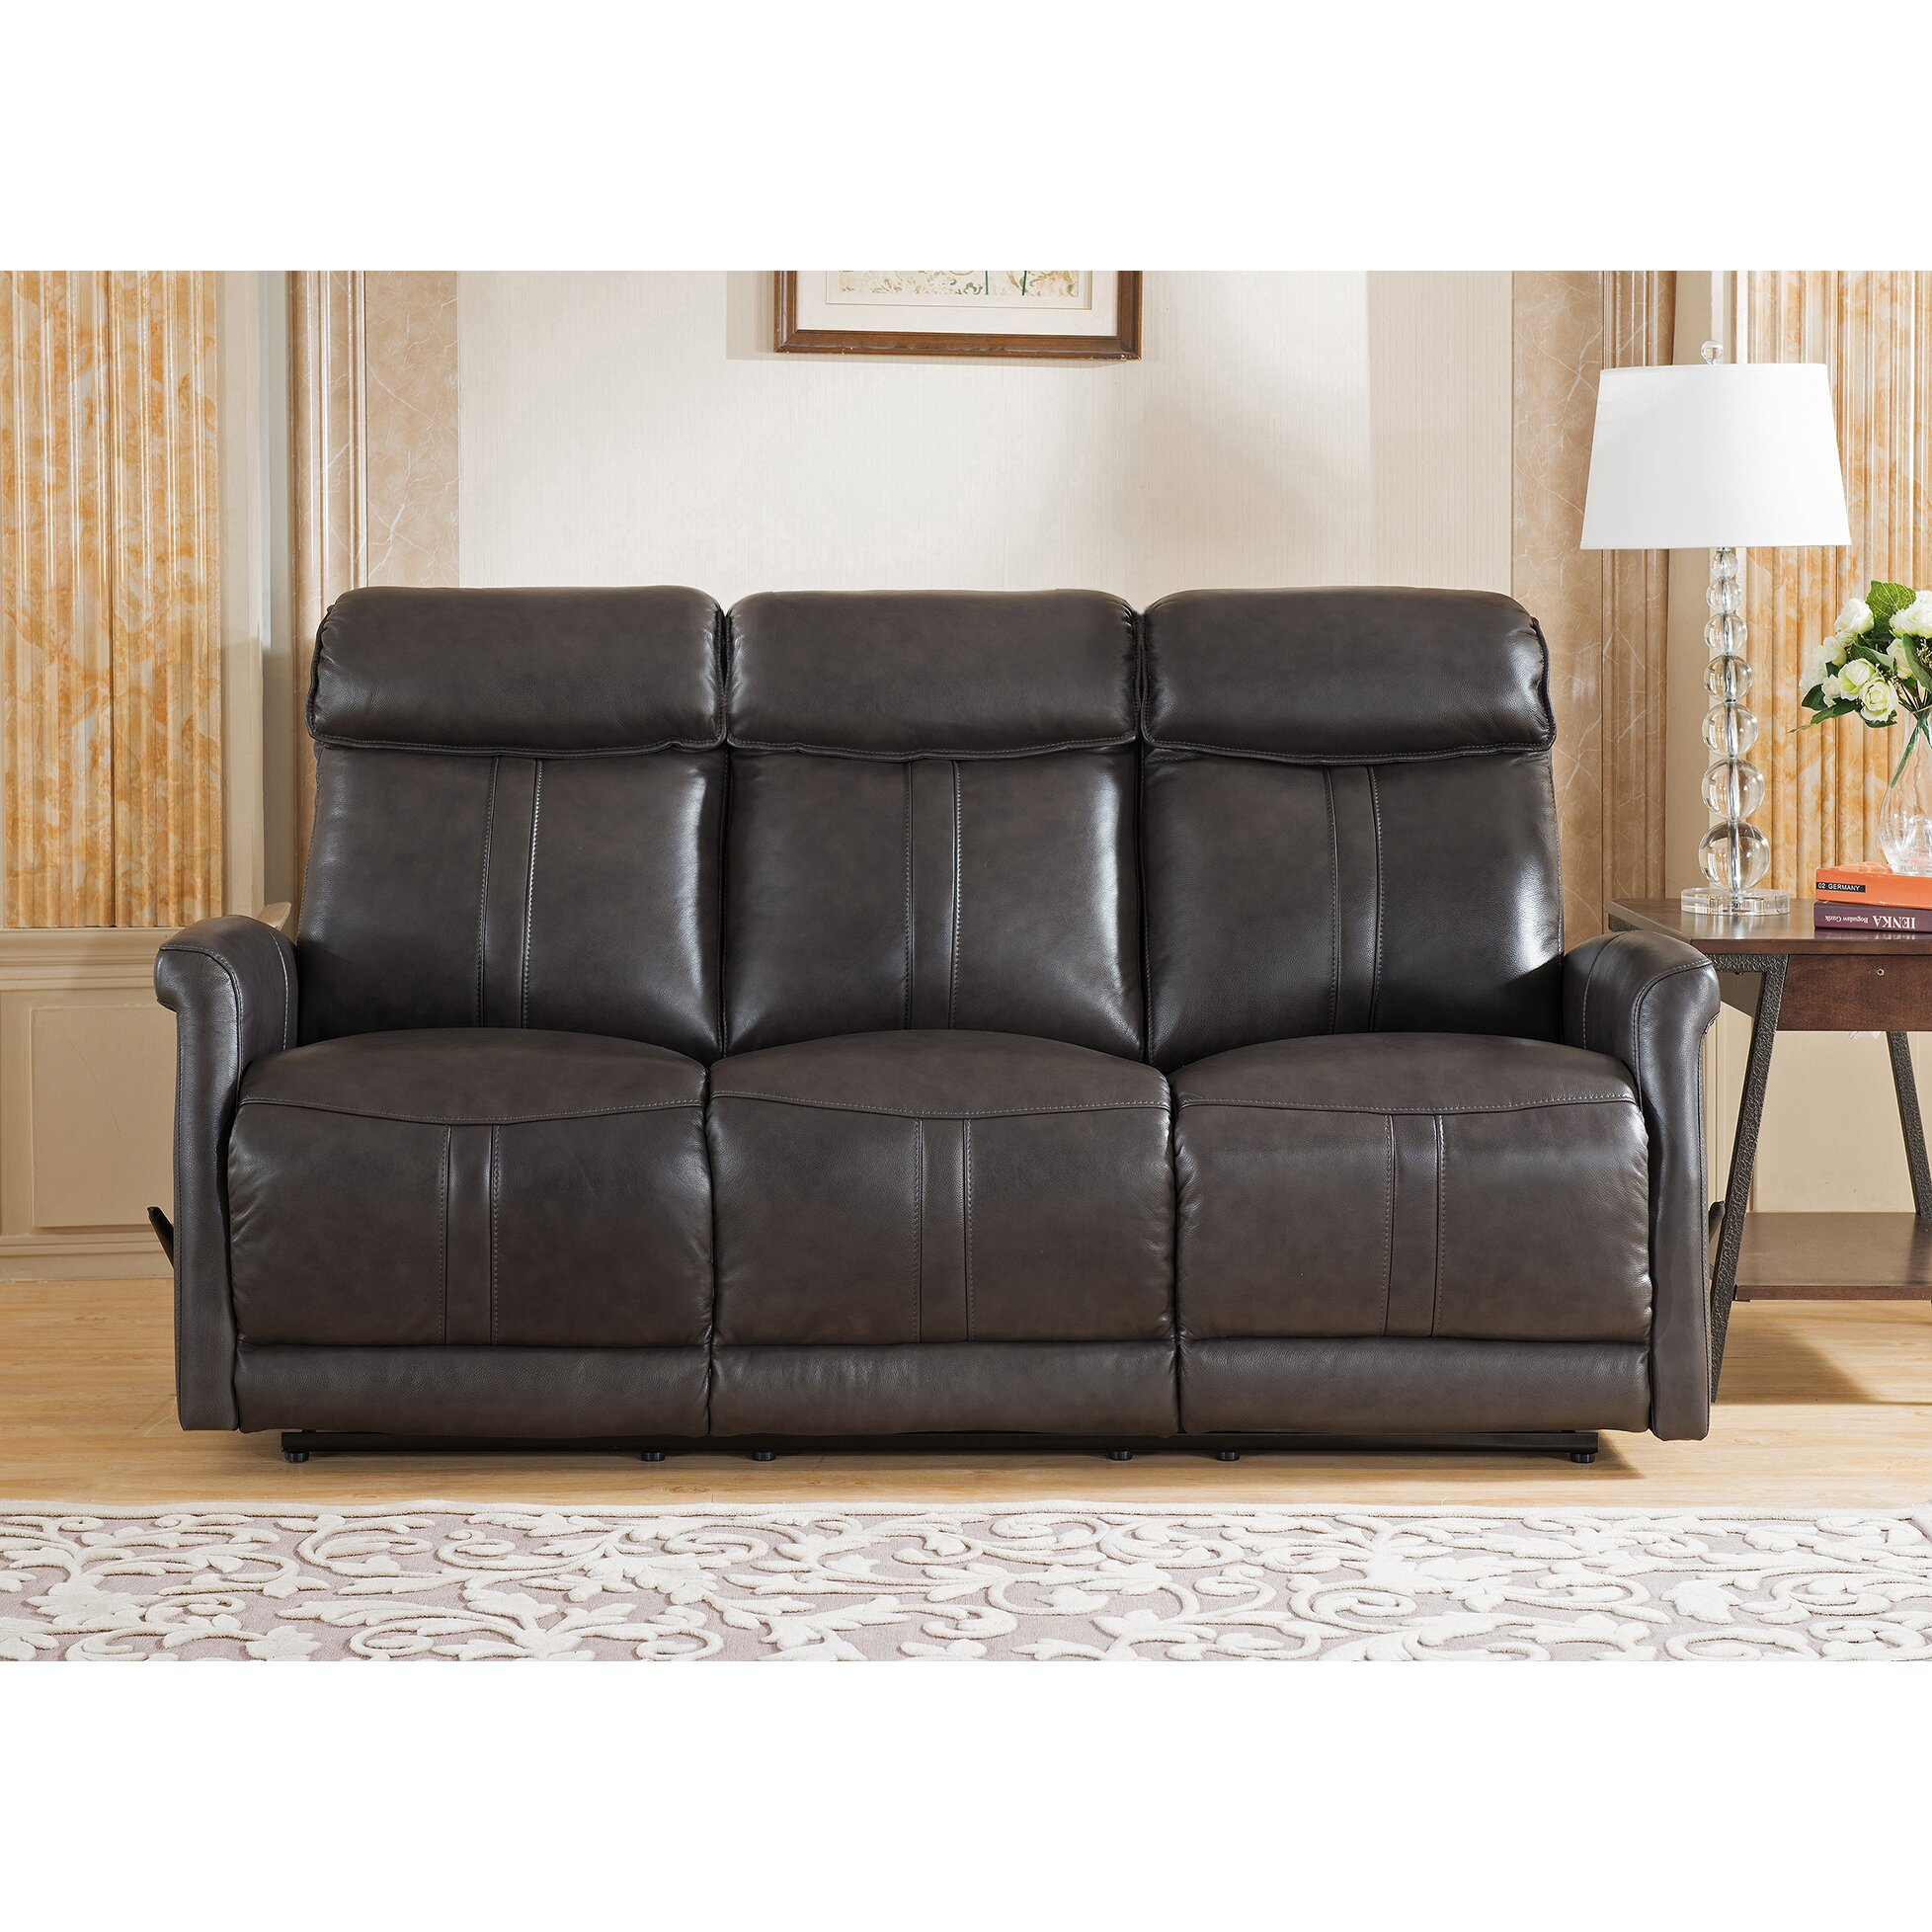 Amax mosby 3 piece leather living room set wayfair for 3 piece living room set